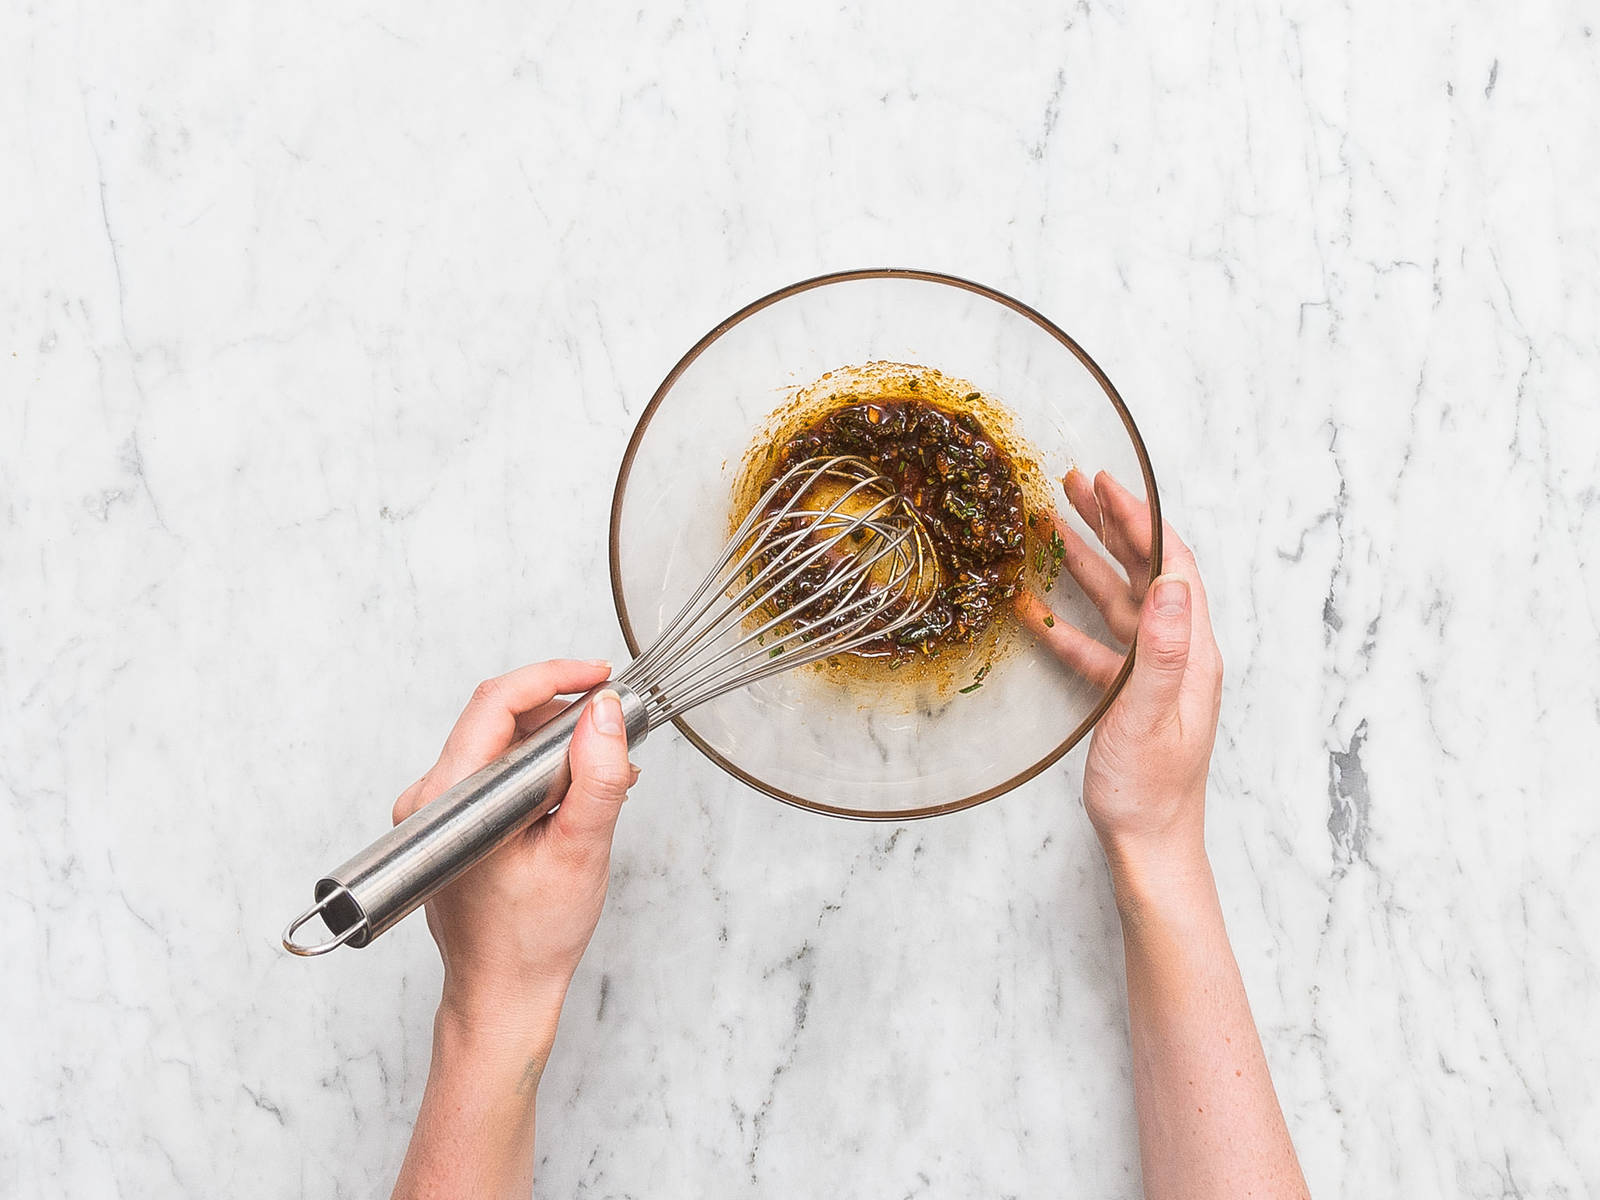 Peel and chop garlic. Finely chop oregano and rosemary. Add olive oil, oregano, rosemary, chopped garlic, cane sugar, and paprika powder to a bowl and stir to combine.